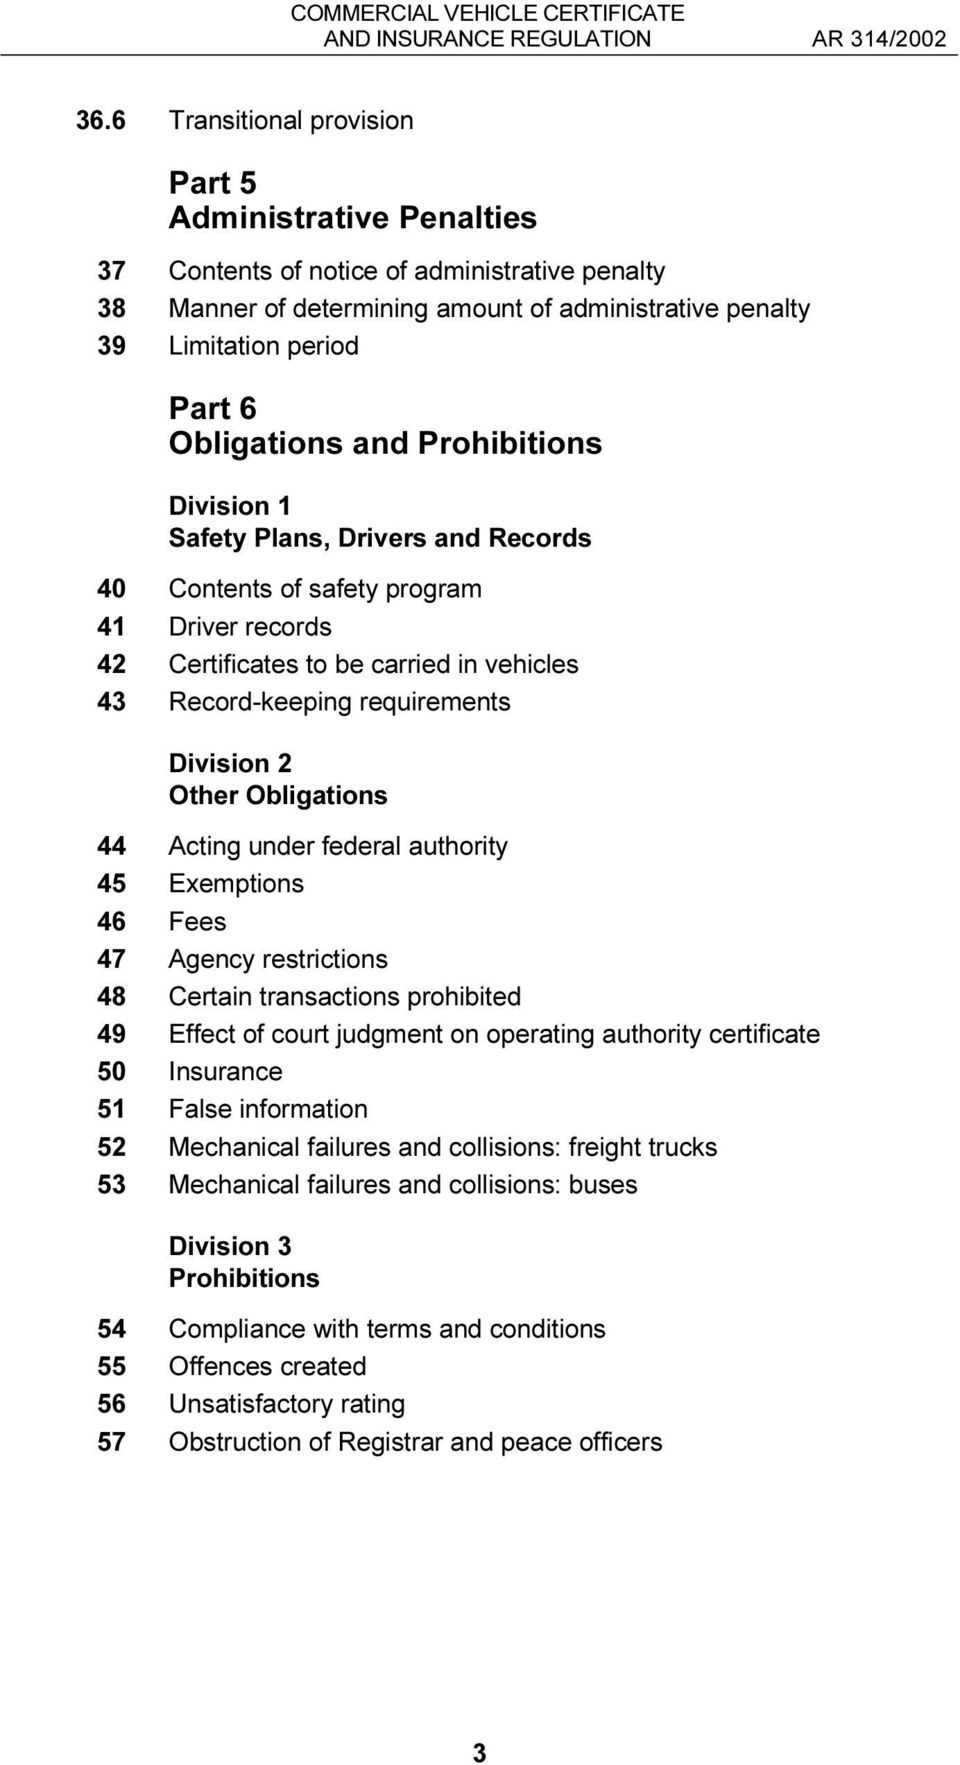 Obligations and Prohibitions Division 1 Safety Plans, Drivers and Records 40 Contents of safety program 41 Driver records 42 Certificates to be carried in vehicles 43 Record-keeping requirements